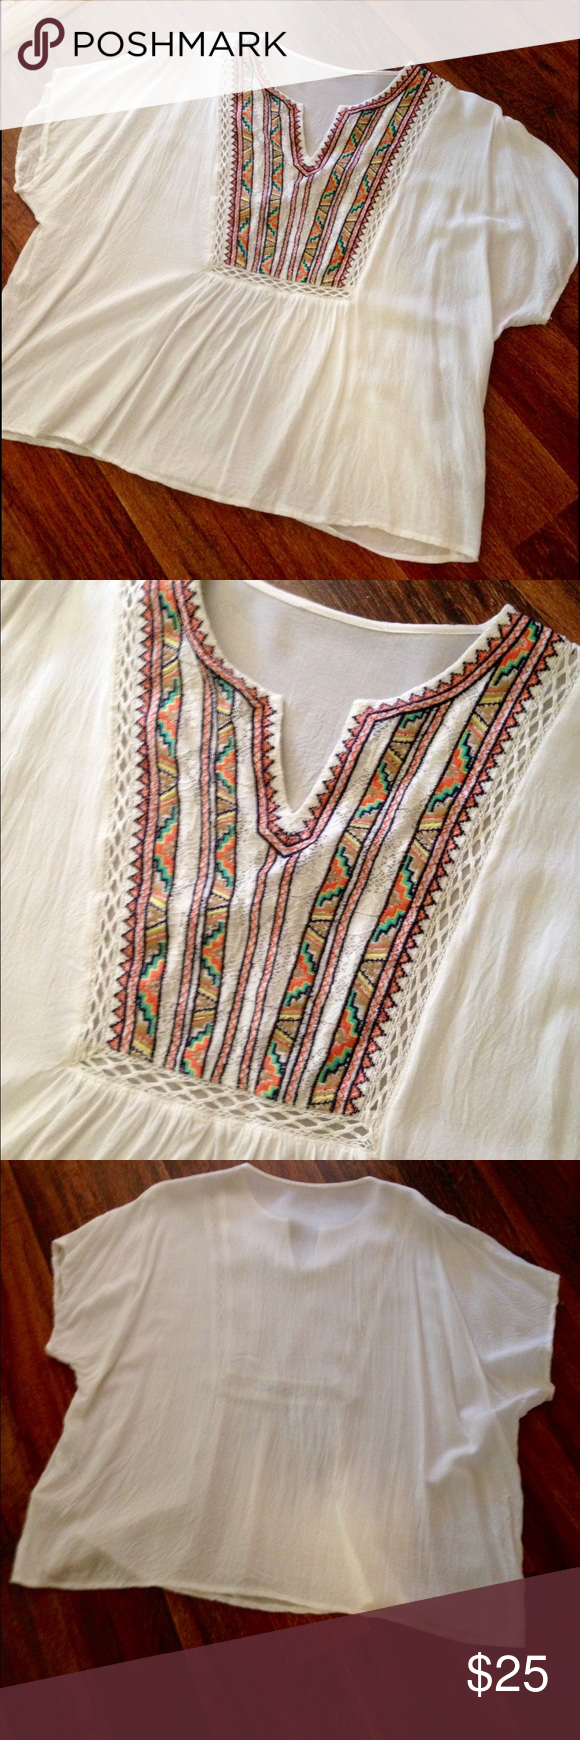 Chelsea & Violet Embroidered Boho Top Chelsea & Violet Embroidered Boho Top. Worn only once and in perfect condition! I did cut out the tag because it was itchy. So cute! True to size! Open to offers! Chelsea & Violet Tops Blouses